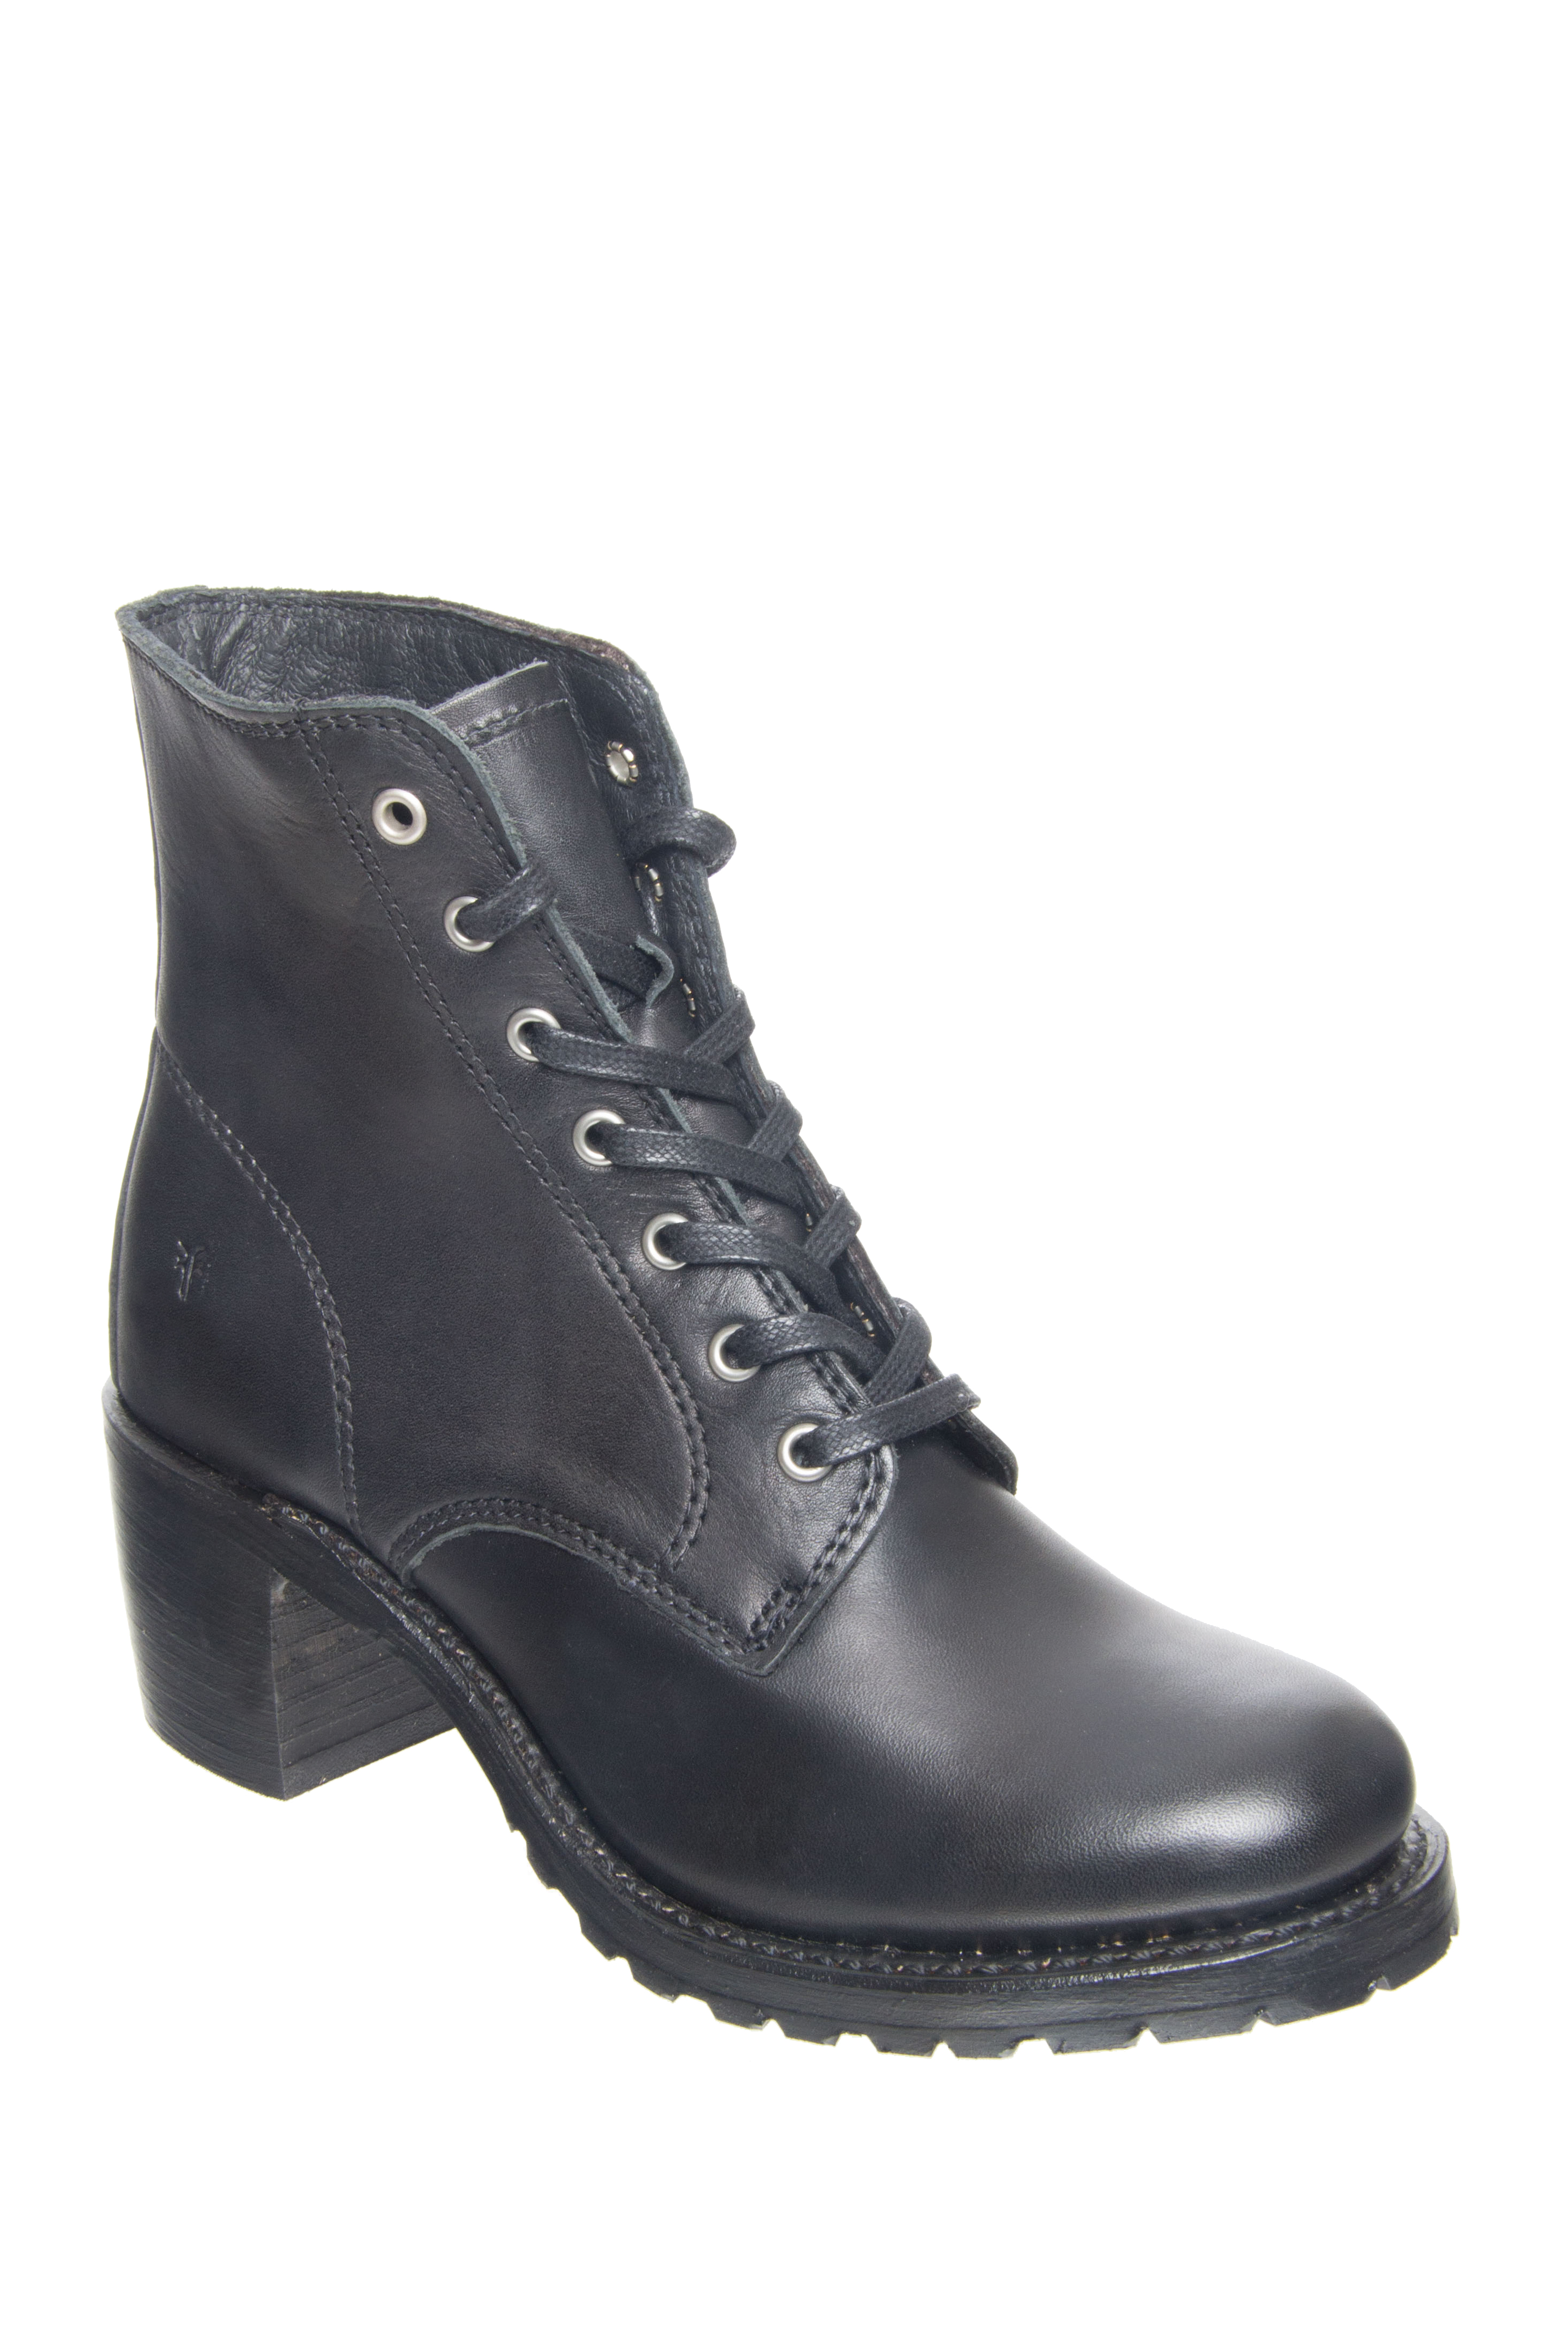 Frye Sabrina 6G Lace Up Boots - Black